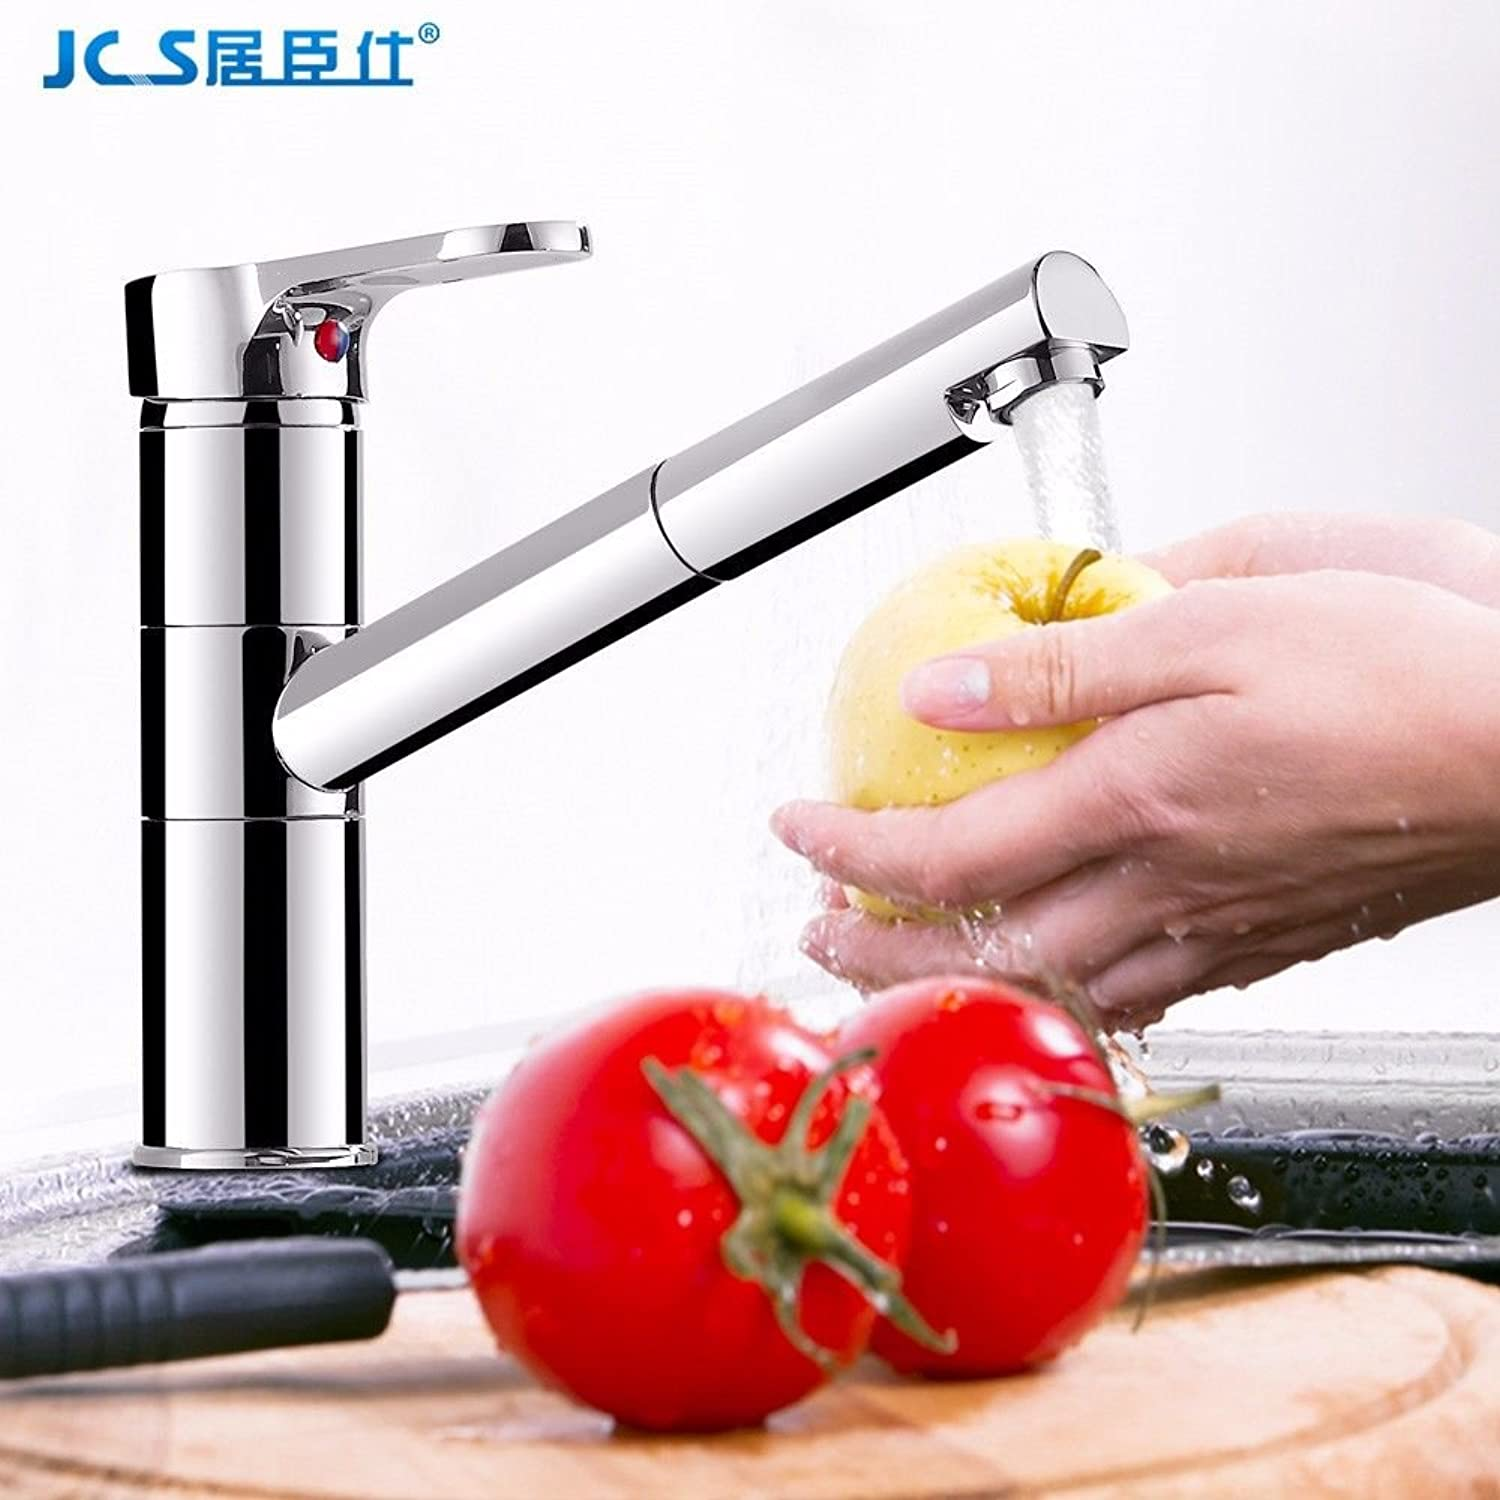 Commercial Single Lever Pull Down Kitchen Sink Faucet Brass Constructed Polished Pull-Out Kitchen Hot and Cold Faucet Sink Full Copper Stretchable redating Telescopic Sink Sink Faucet